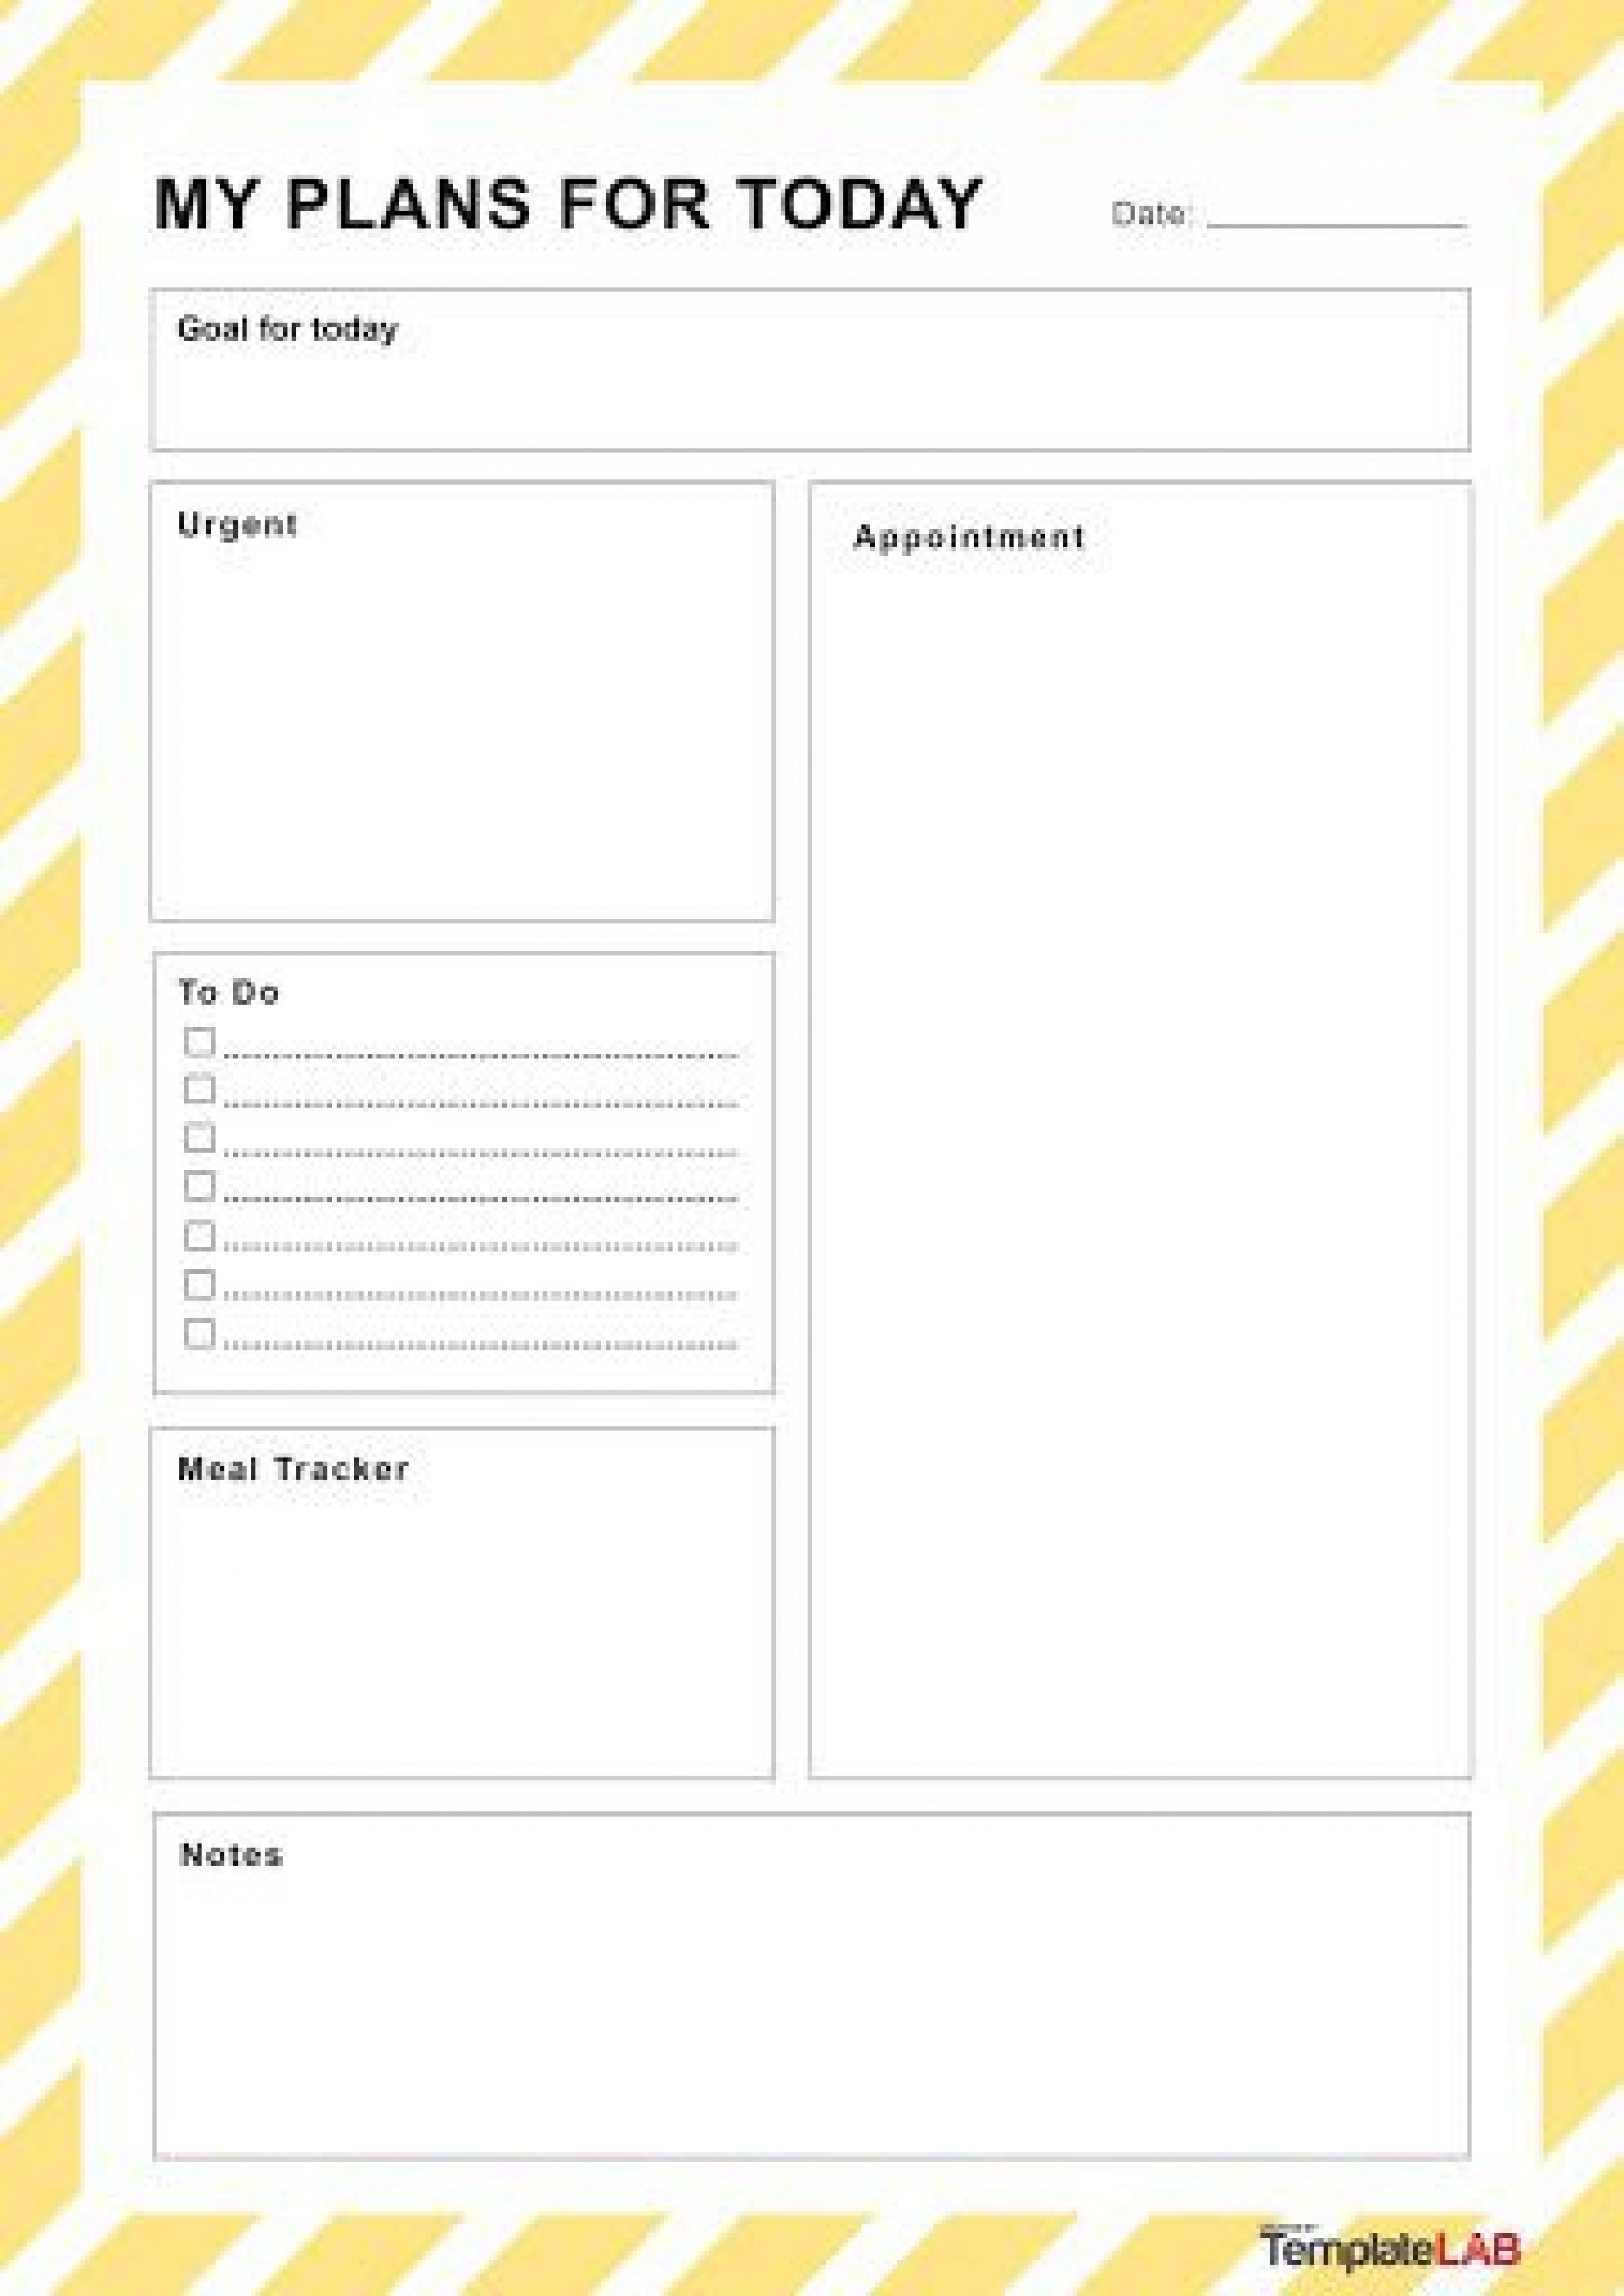 002 Dreaded Daily Schedule Template Printable Concept 1920